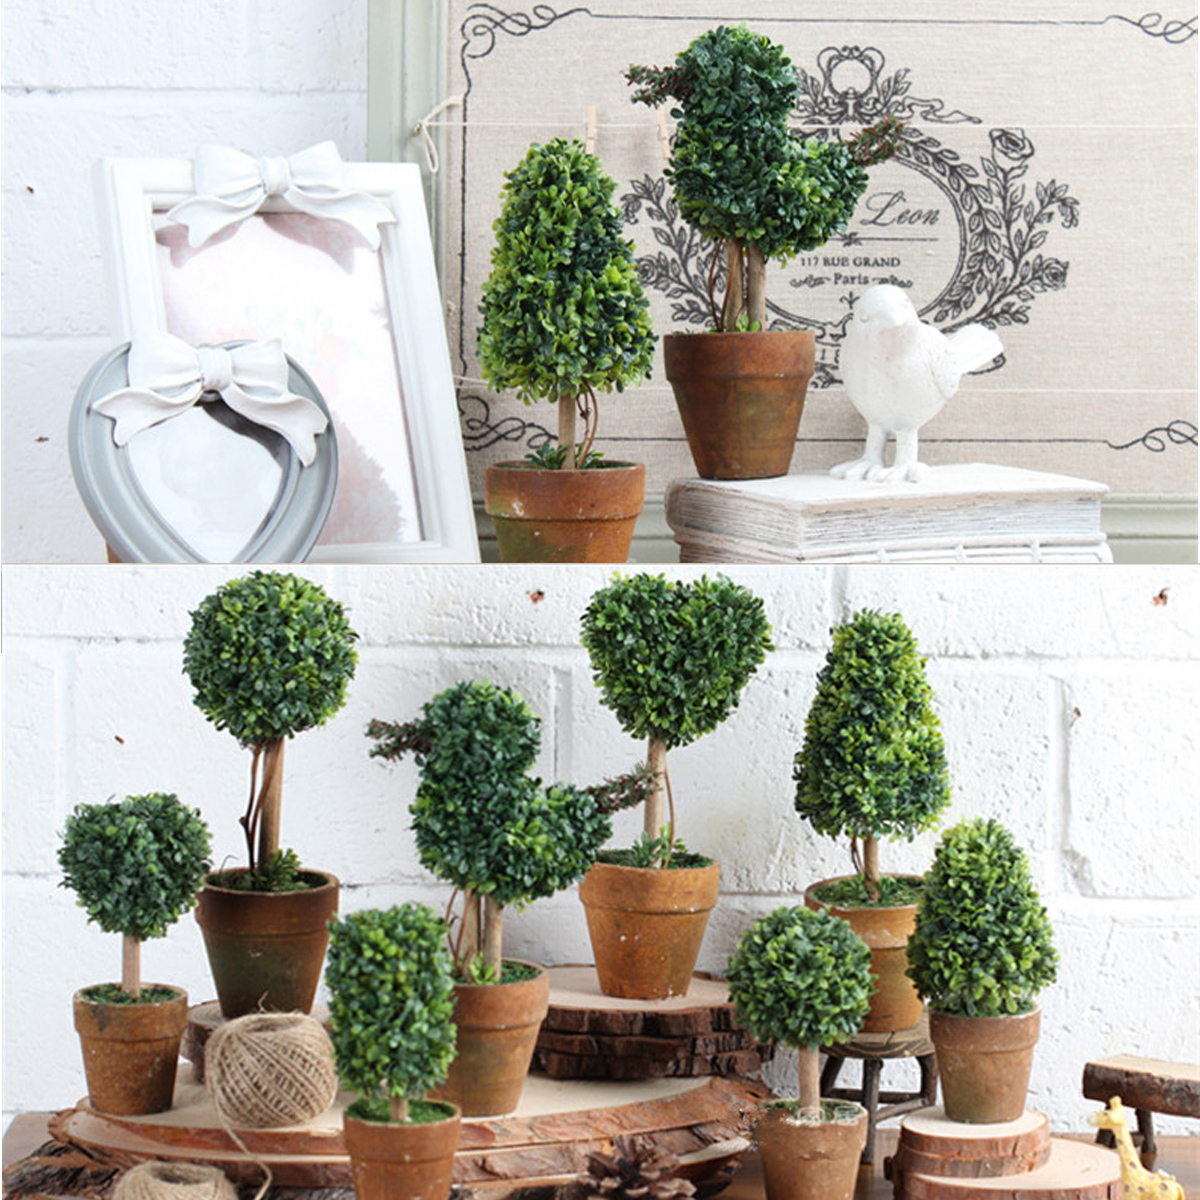 Artificial potted plant plastic garden grass ball topiary tree pot home desk decor alex nld - Garden decor stores ...